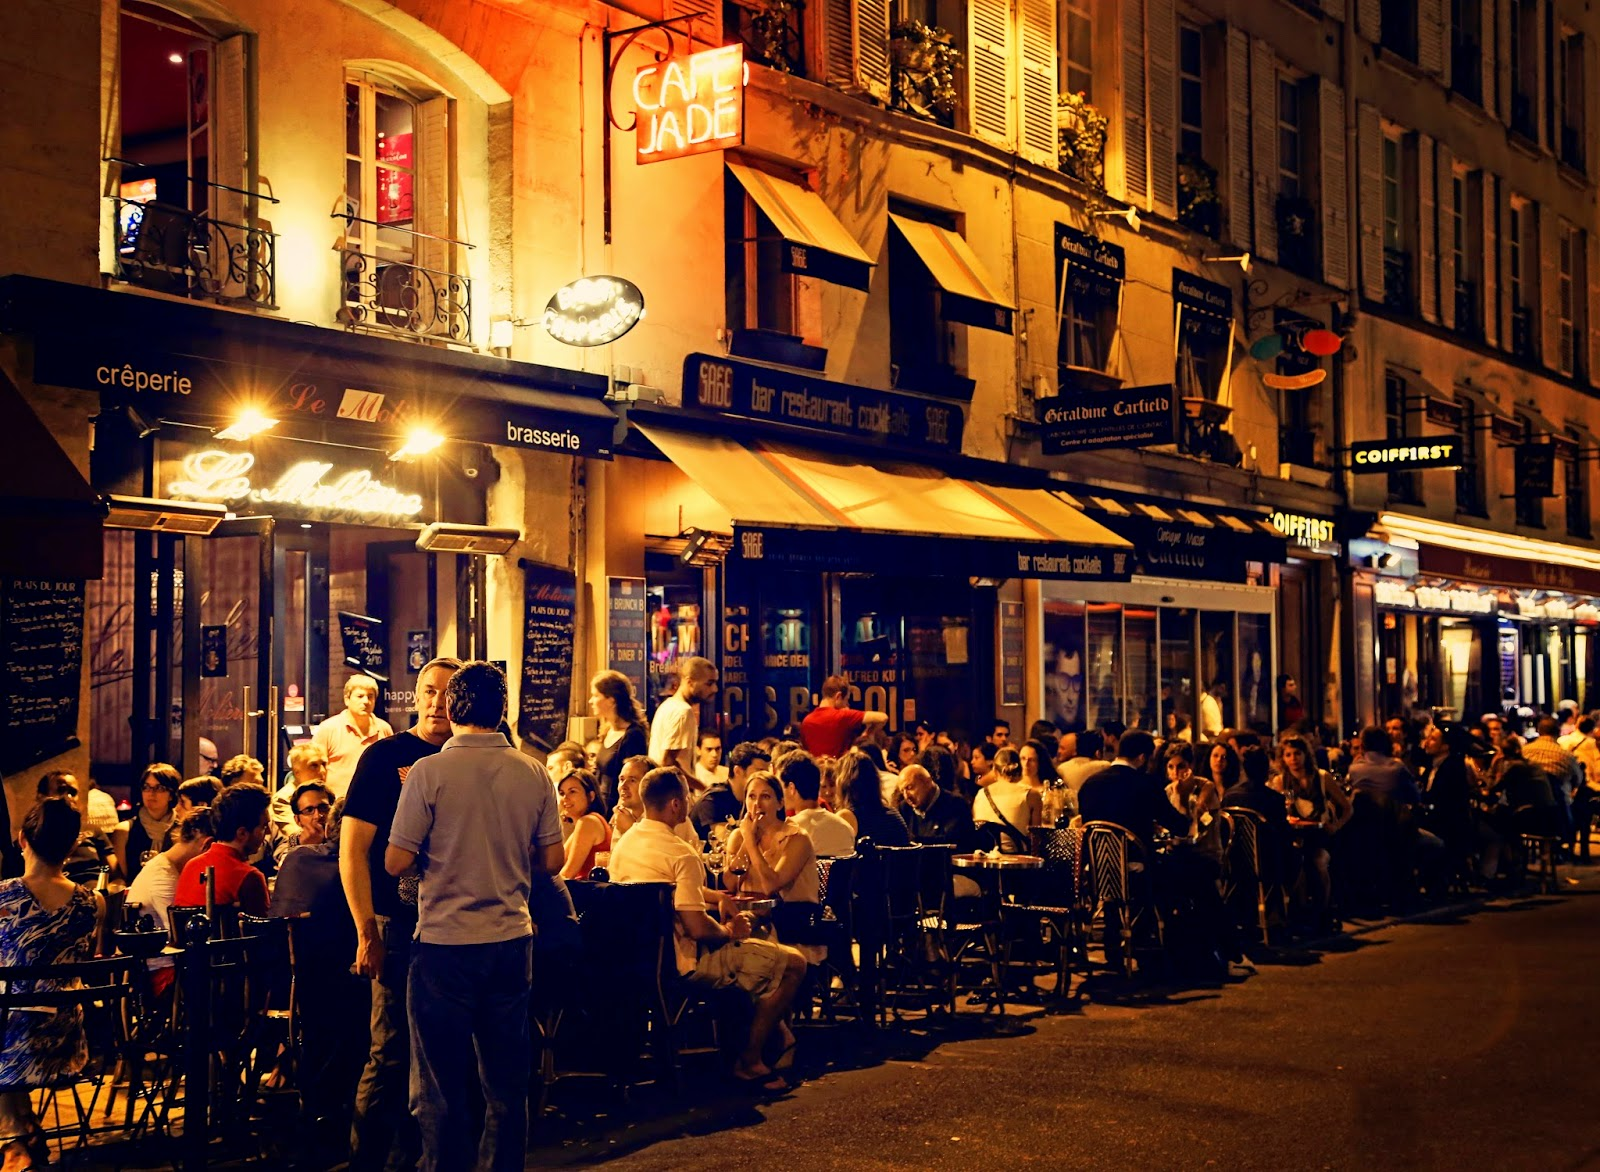 outdoor dining a delightful part of paris night life trains travel with jim loomis. Black Bedroom Furniture Sets. Home Design Ideas